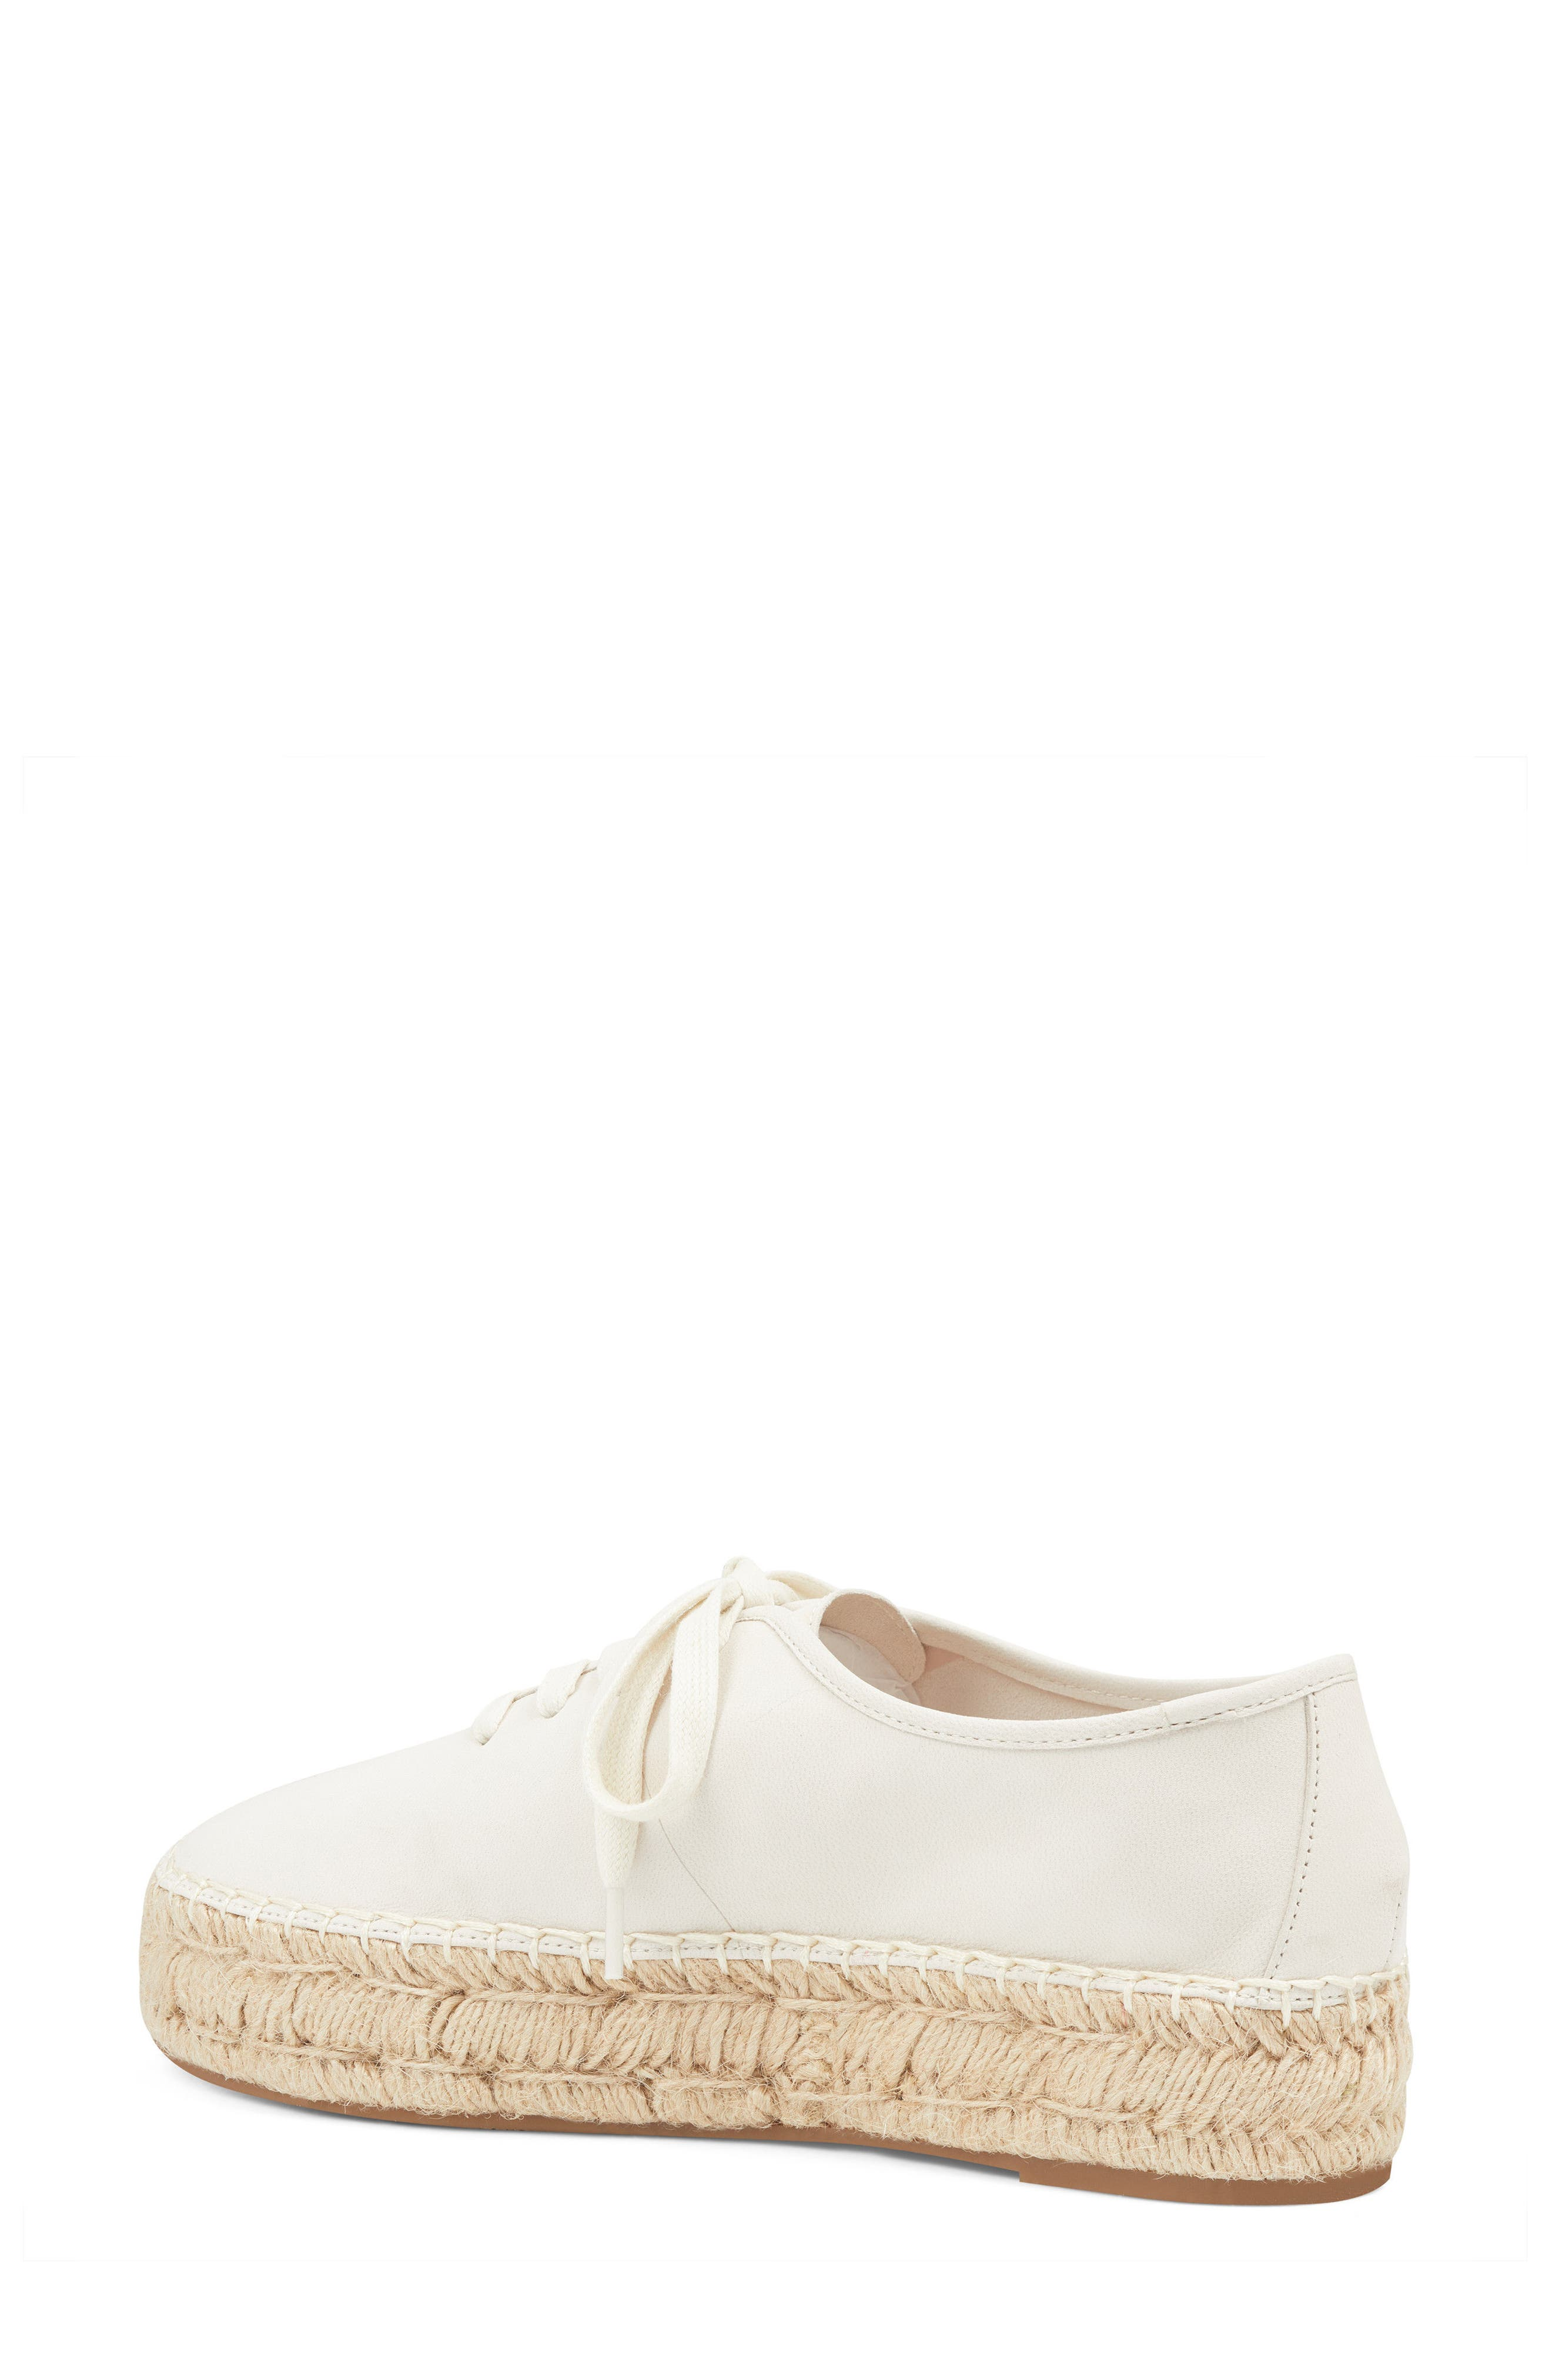 Gingerbread Espadrille Sneaker,                             Alternate thumbnail 2, color,                             OFF WHITE LEATHER